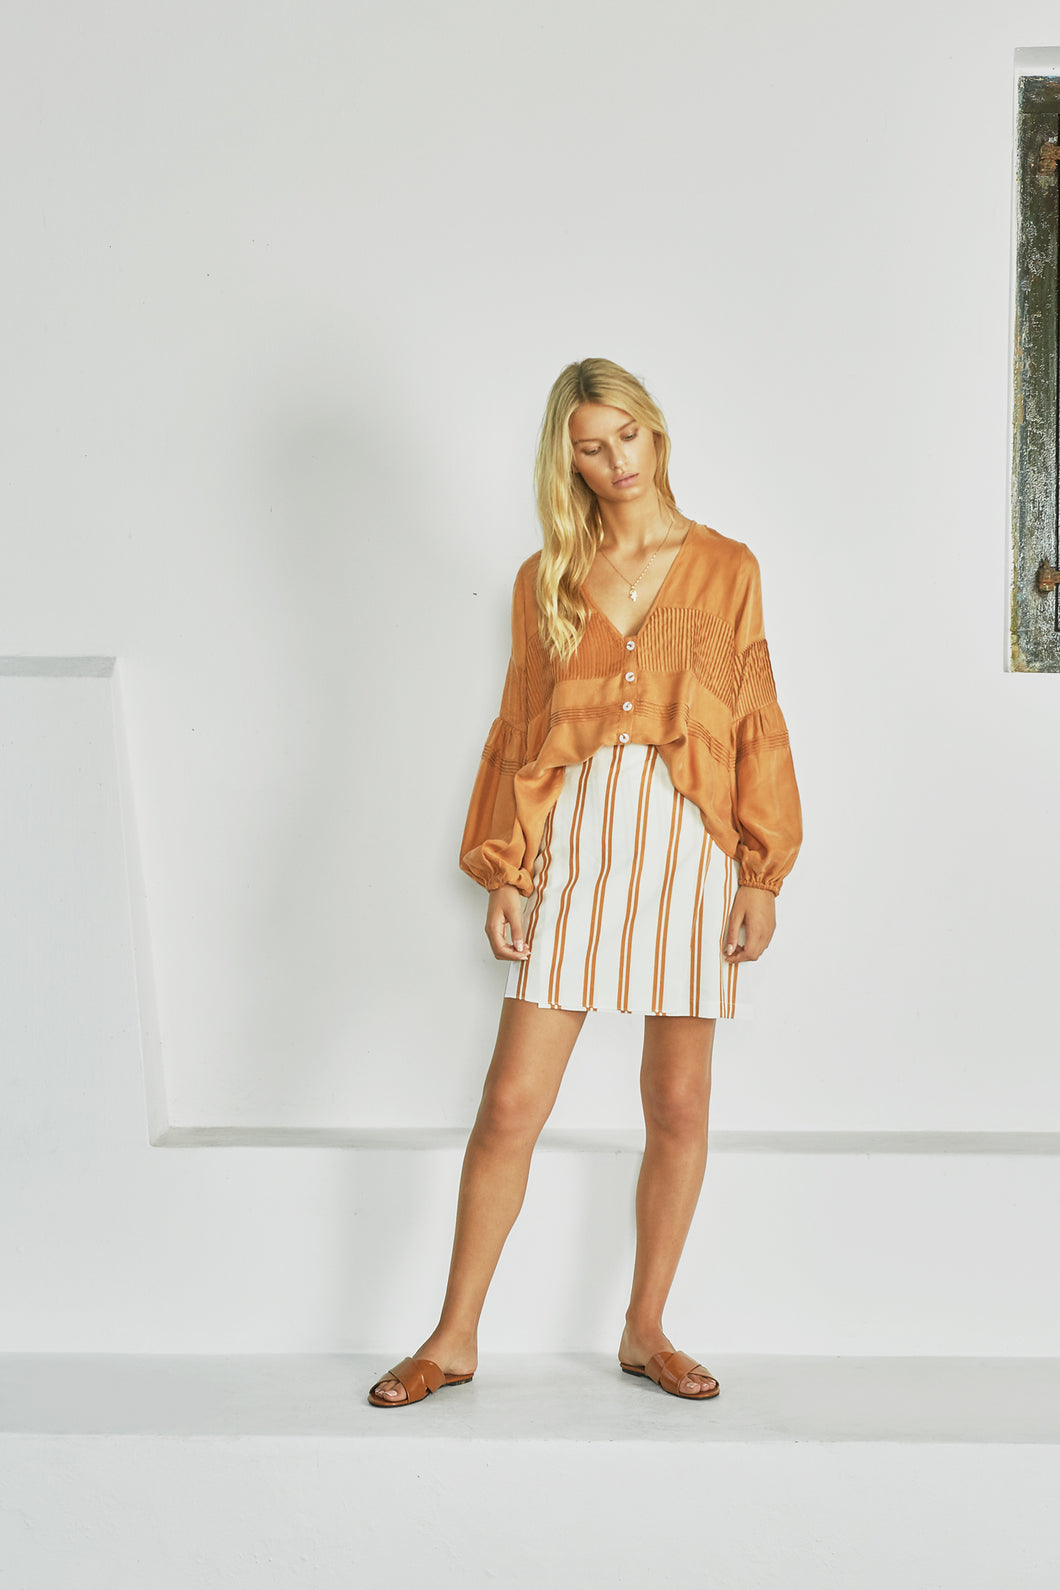 The Lina Blouse by Sancia Online at Jessie sue with FREE EXPRESS shipping in Australia, no minimum spend, AFTERPAY, FREE RETURNS within Australia, 100% SAFE & SECURE. WE CAN'T HELP BUT LOVE BOHEMIA - WHO DOESN'T? THIS BILLOWY BLOUSE